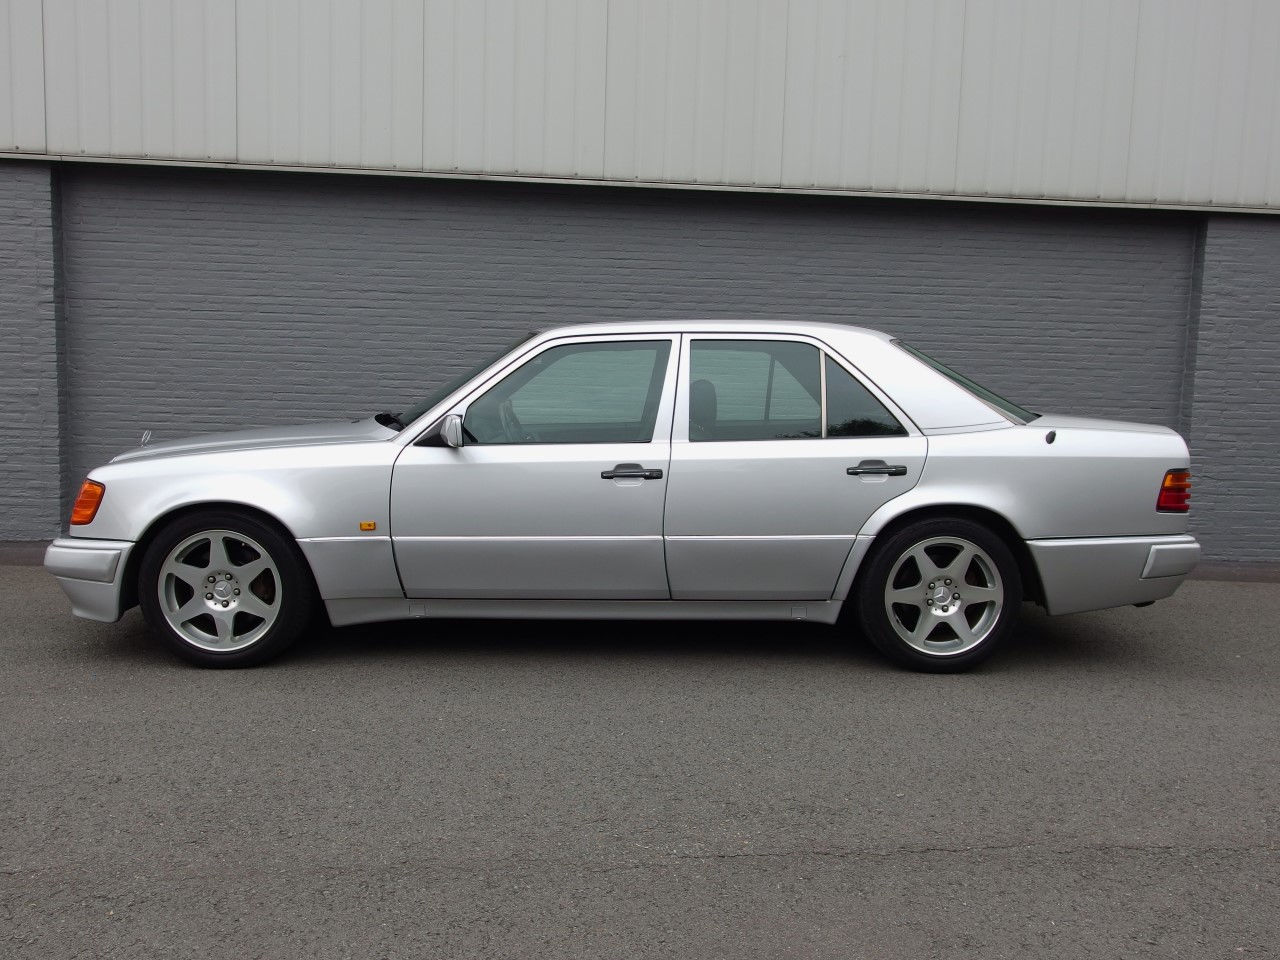 1993 mercedes benz w124 500e benztuning for 1993 mercedes benz 500 class